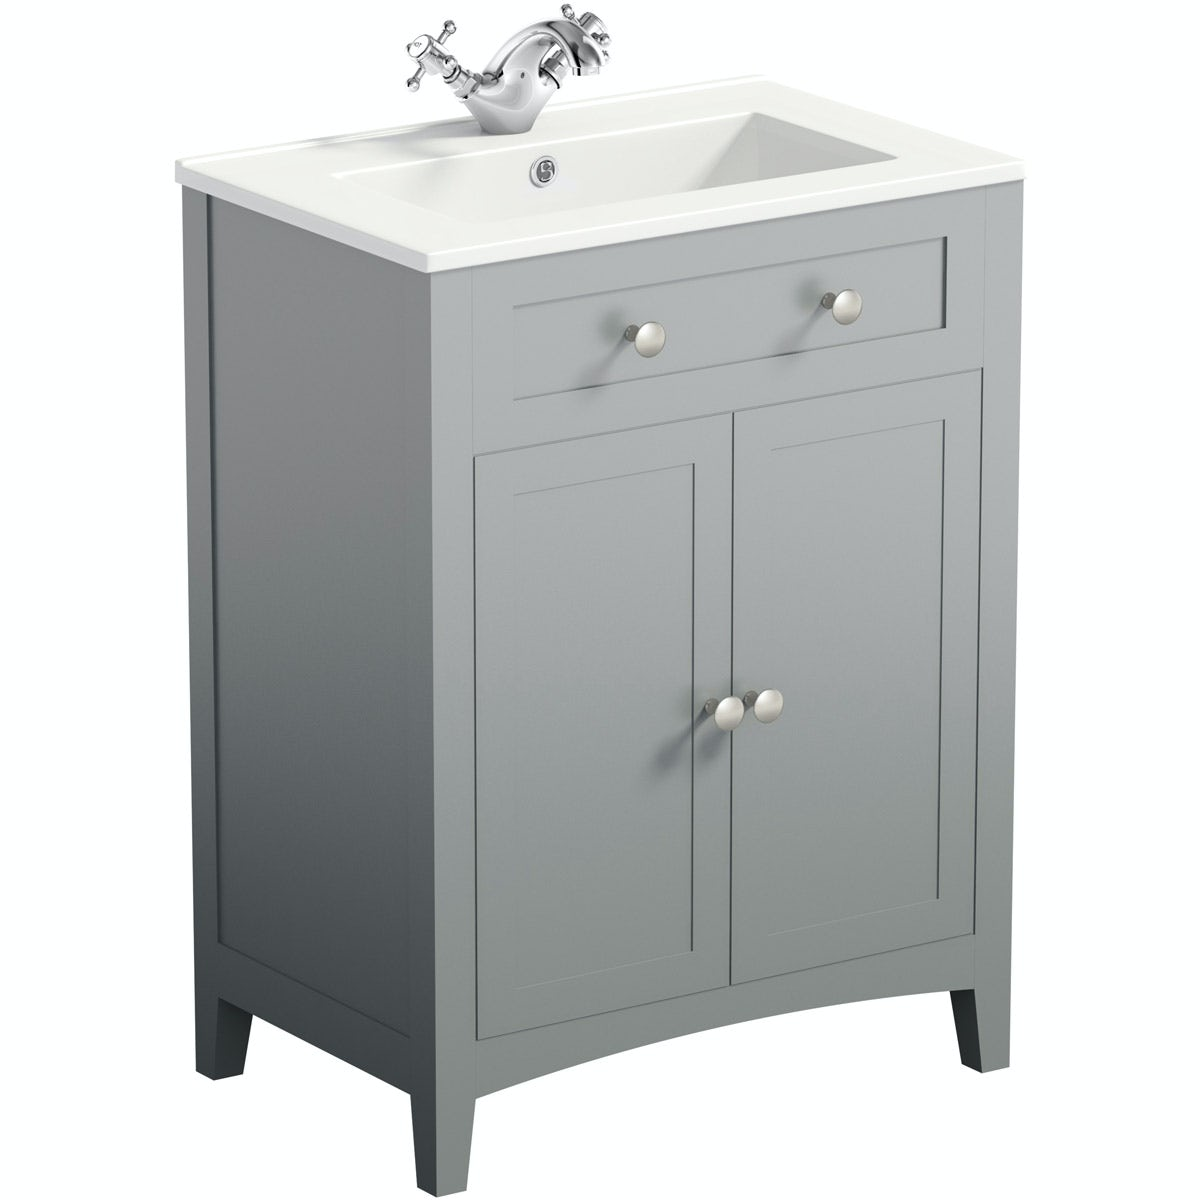 The Bath Co Camberley Satin Grey Vanity Unit With Basin 600mm